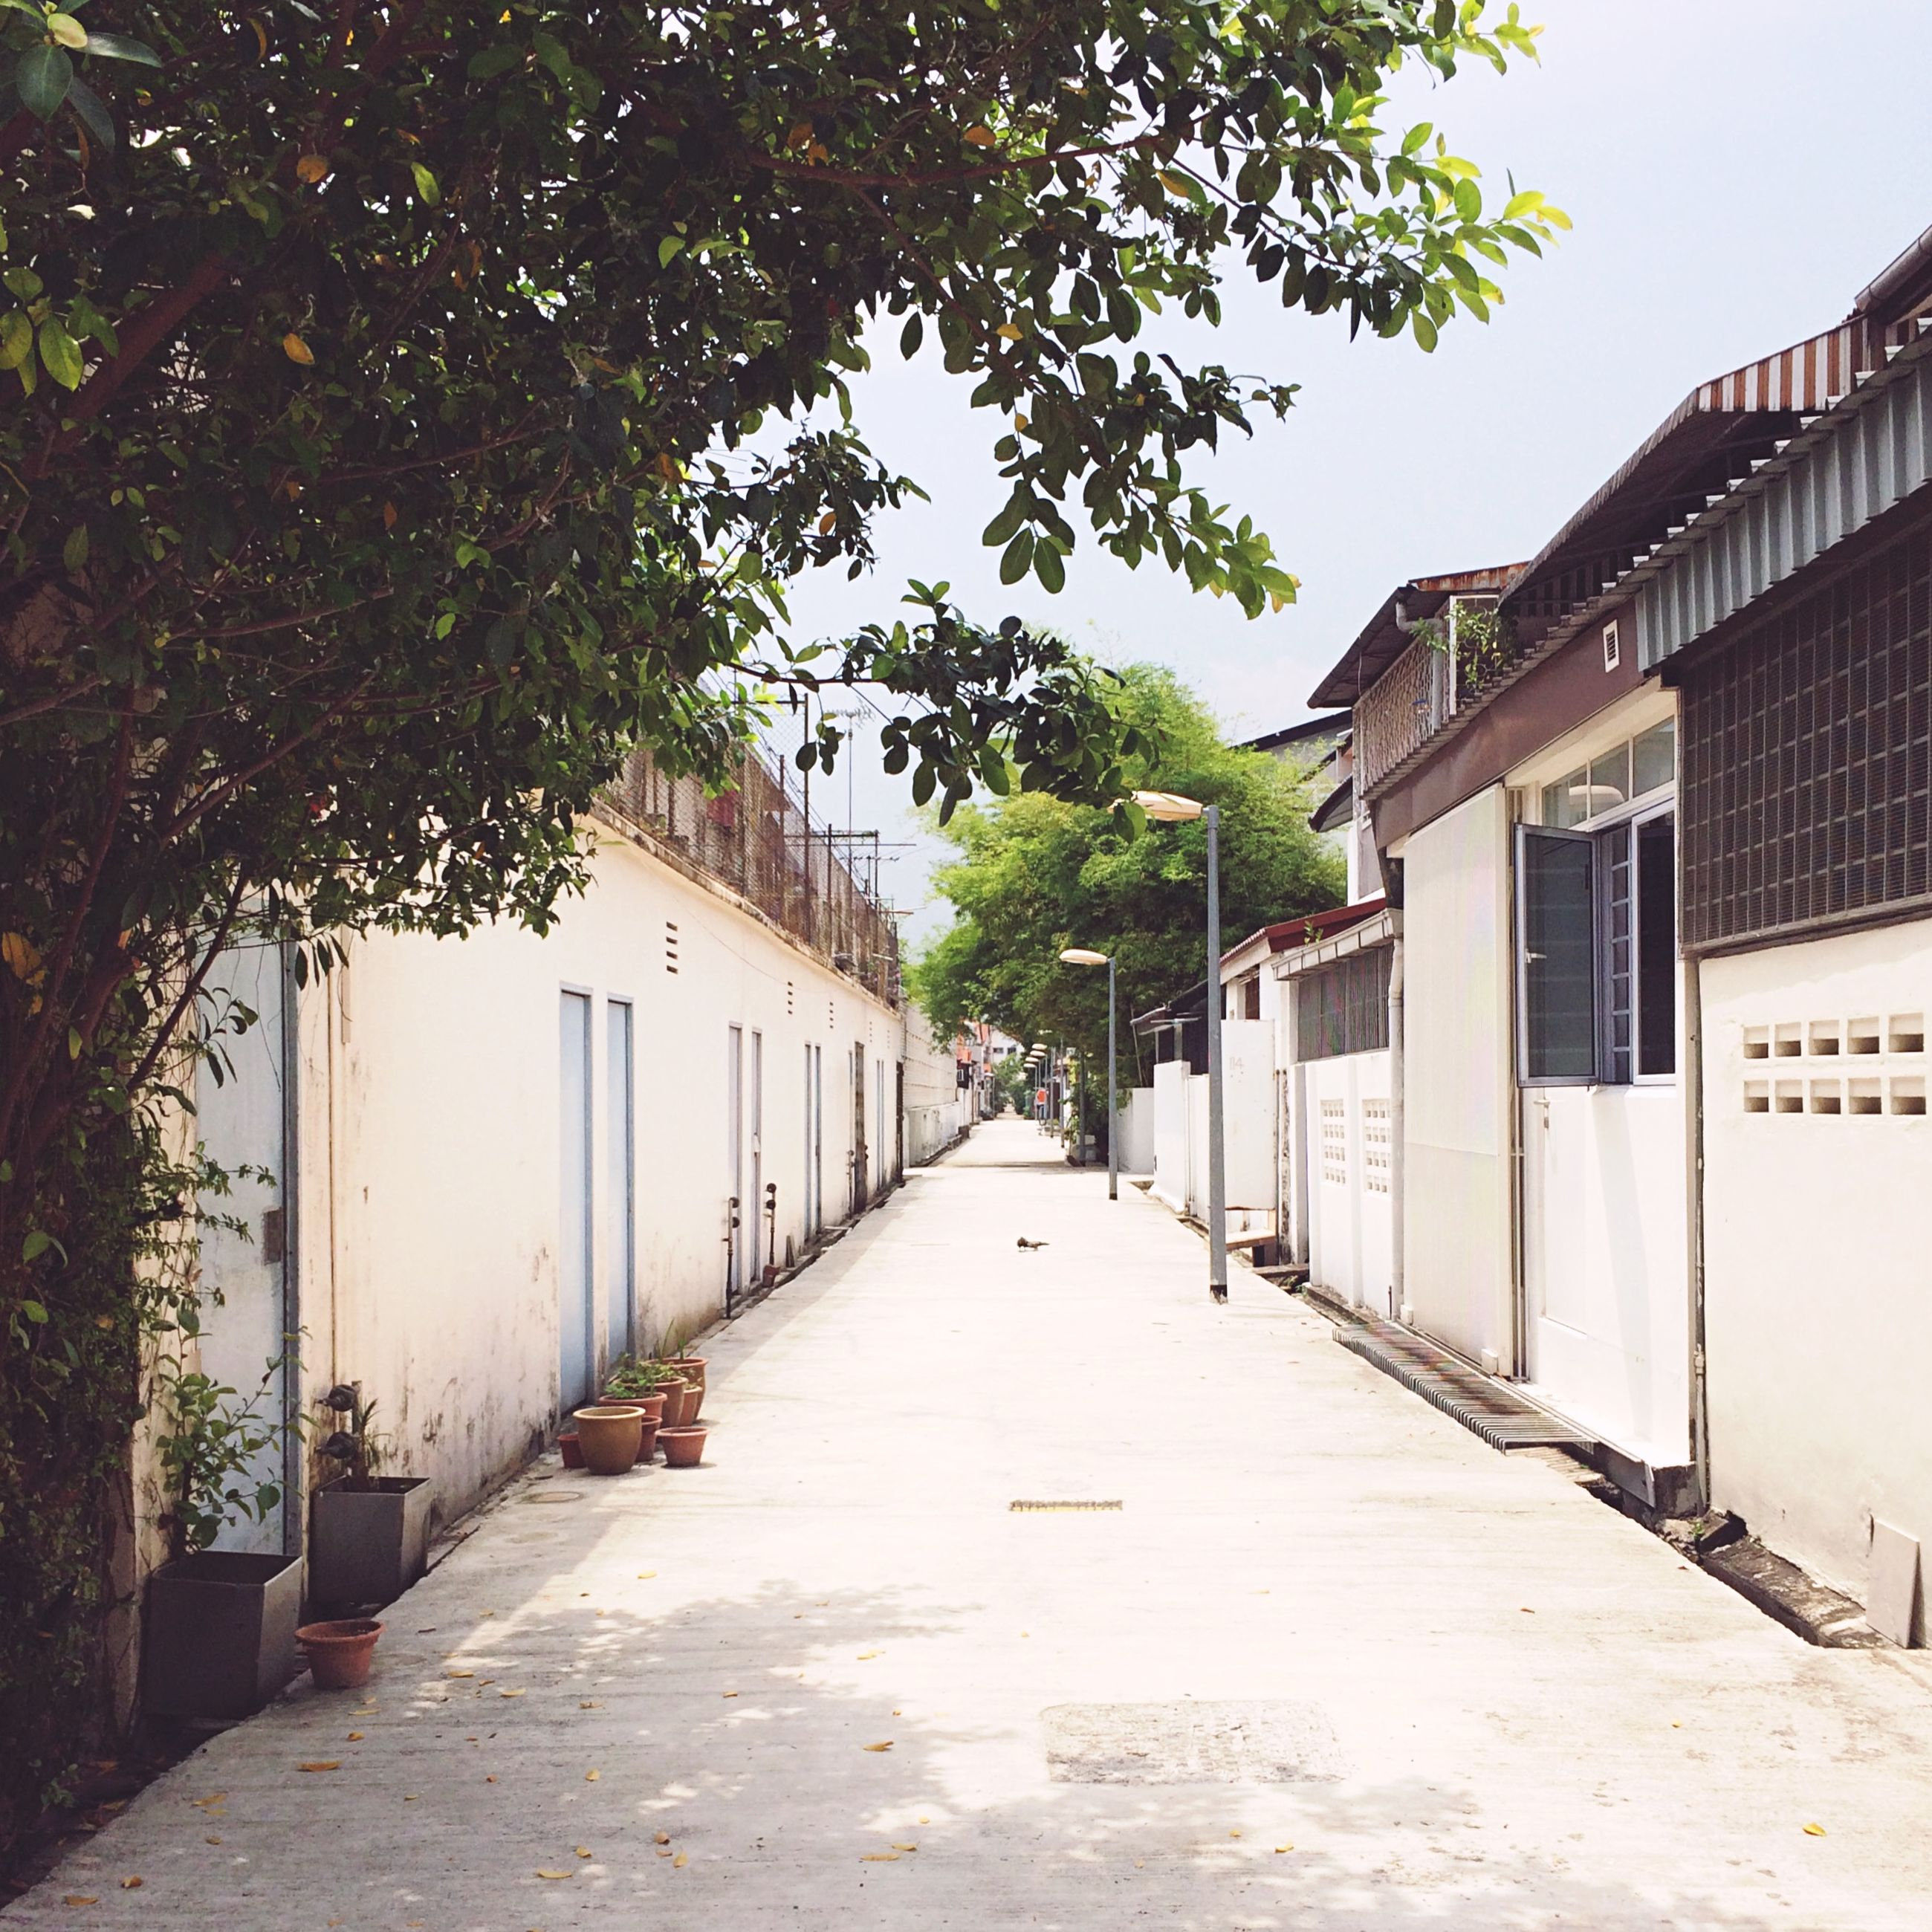 architecture, built structure, building exterior, the way forward, house, tree, diminishing perspective, residential structure, narrow, residential building, street, alley, building, vanishing point, empty, day, long, walkway, door, outdoors